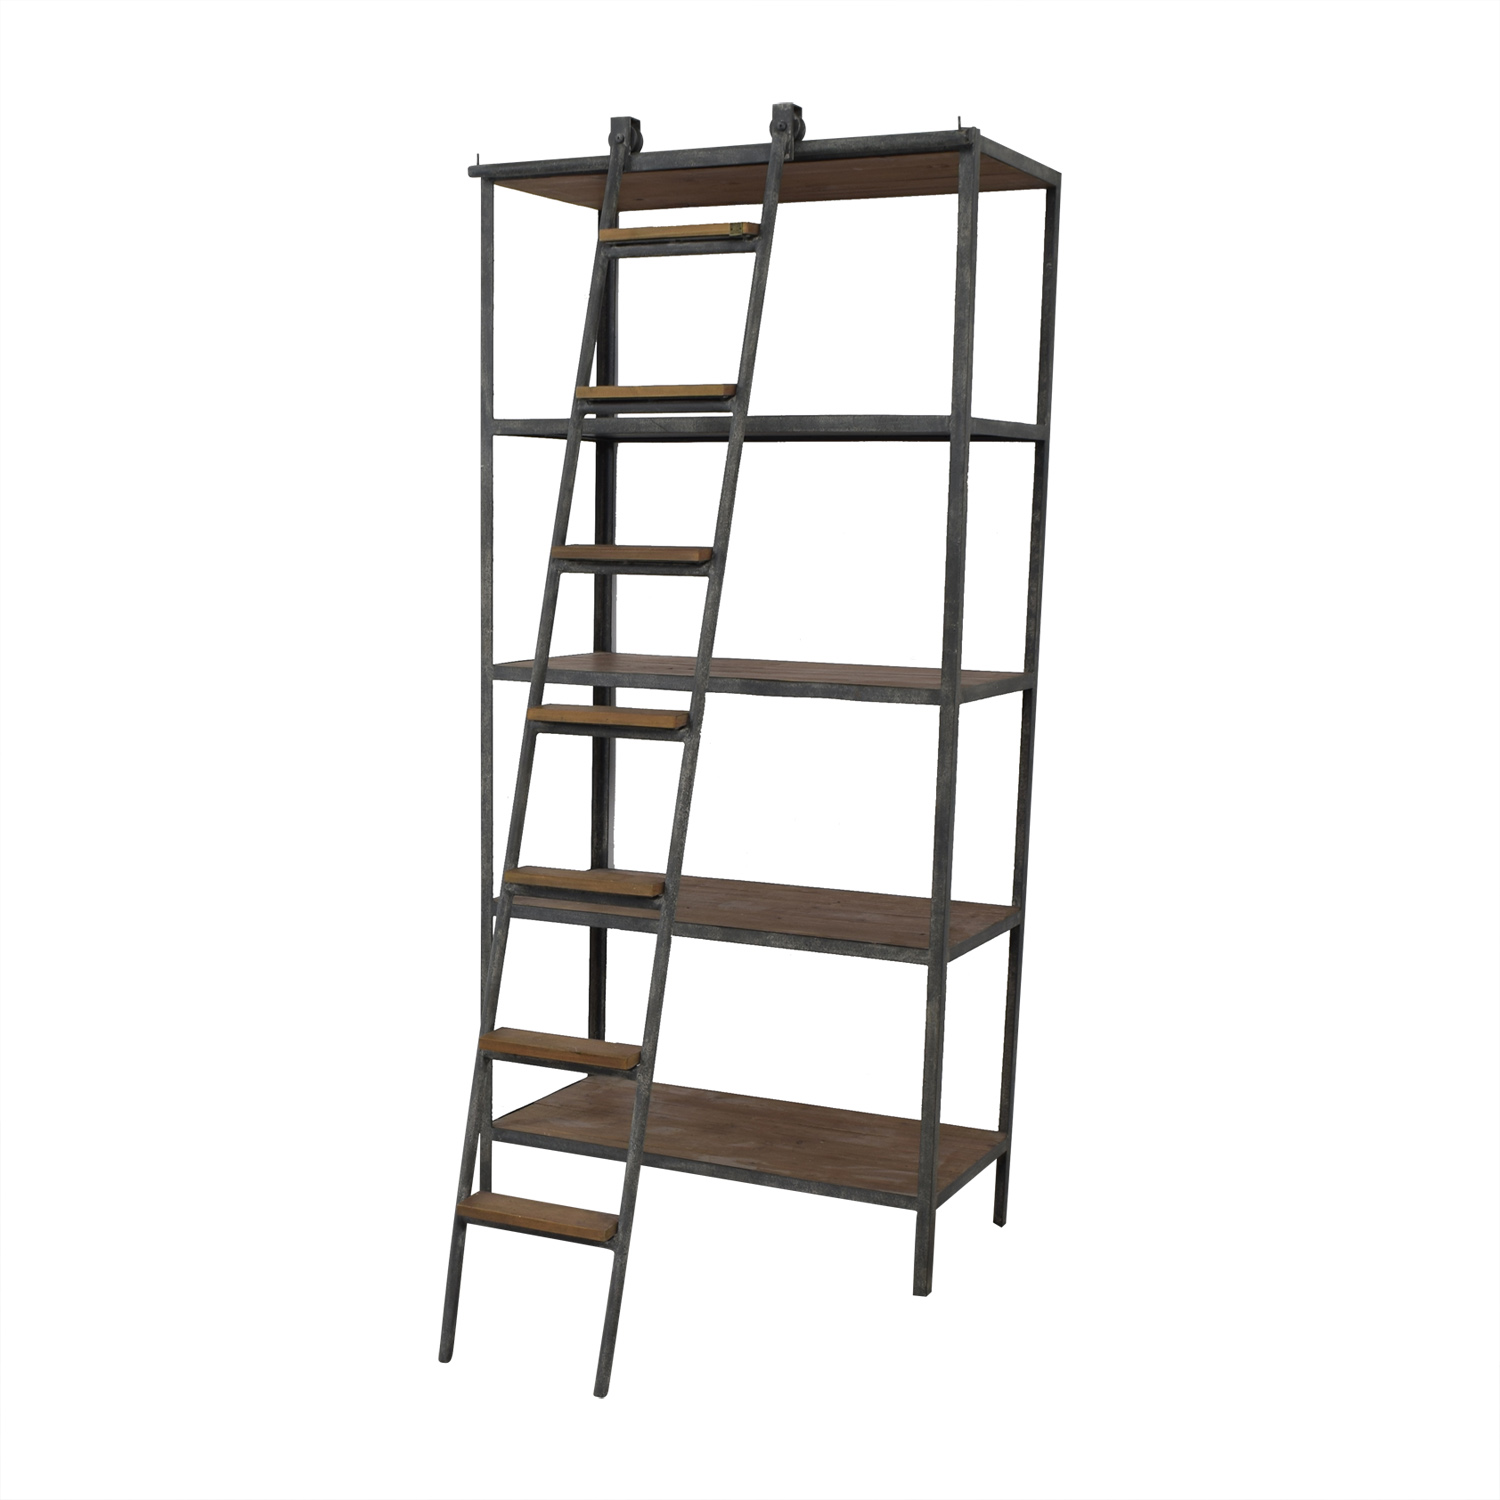 ABC Carpet & Home ABC Carpet & Home Book Shelf with Ladder price